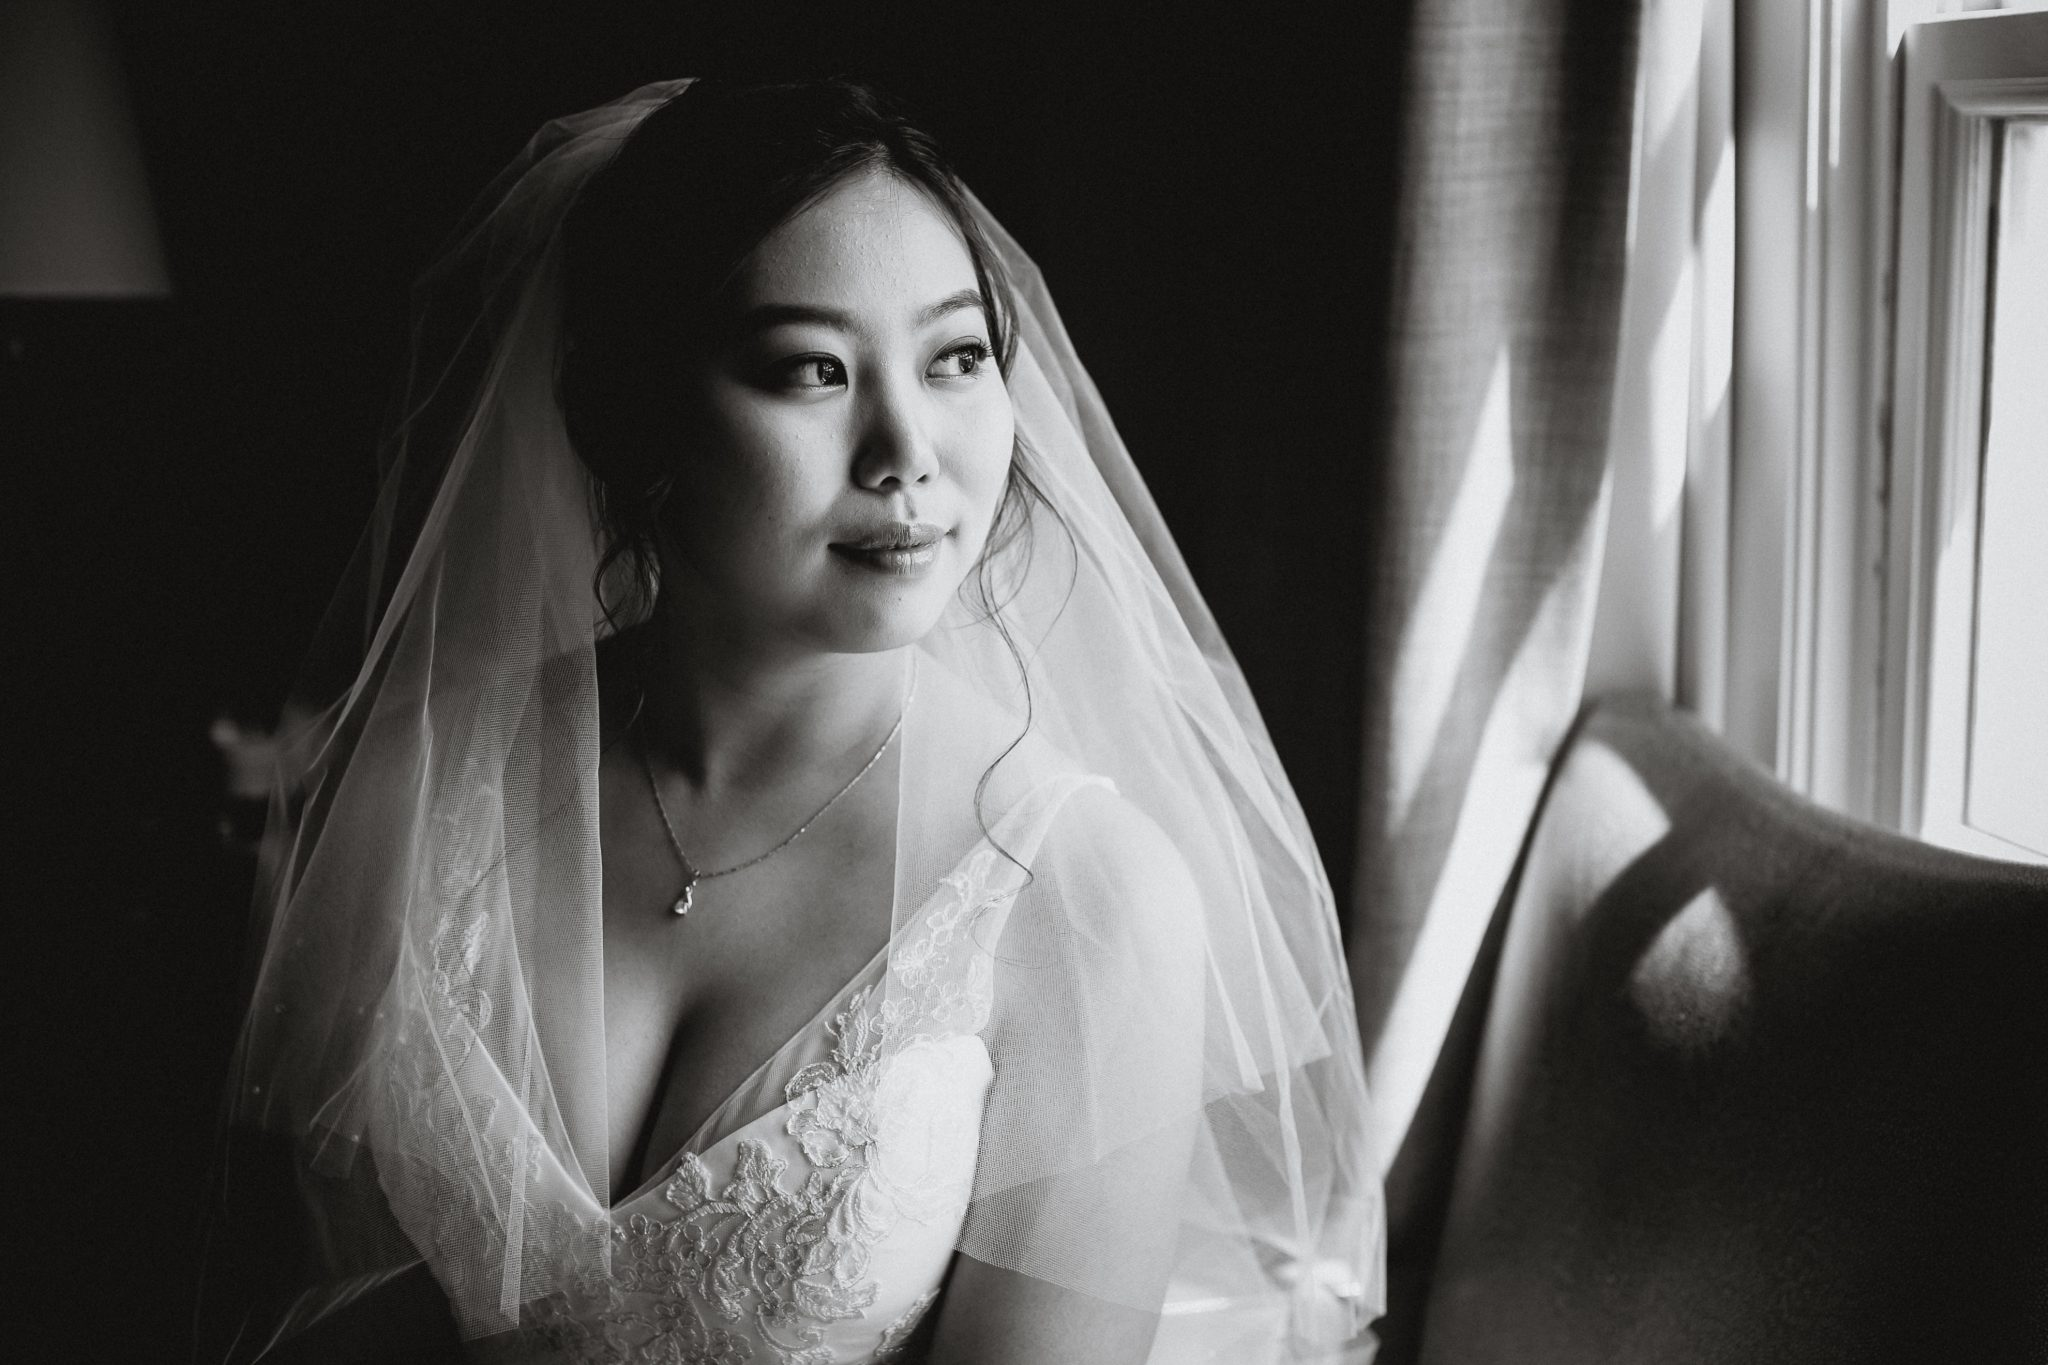 Black and white portrait of the bride smiling and looking out the window